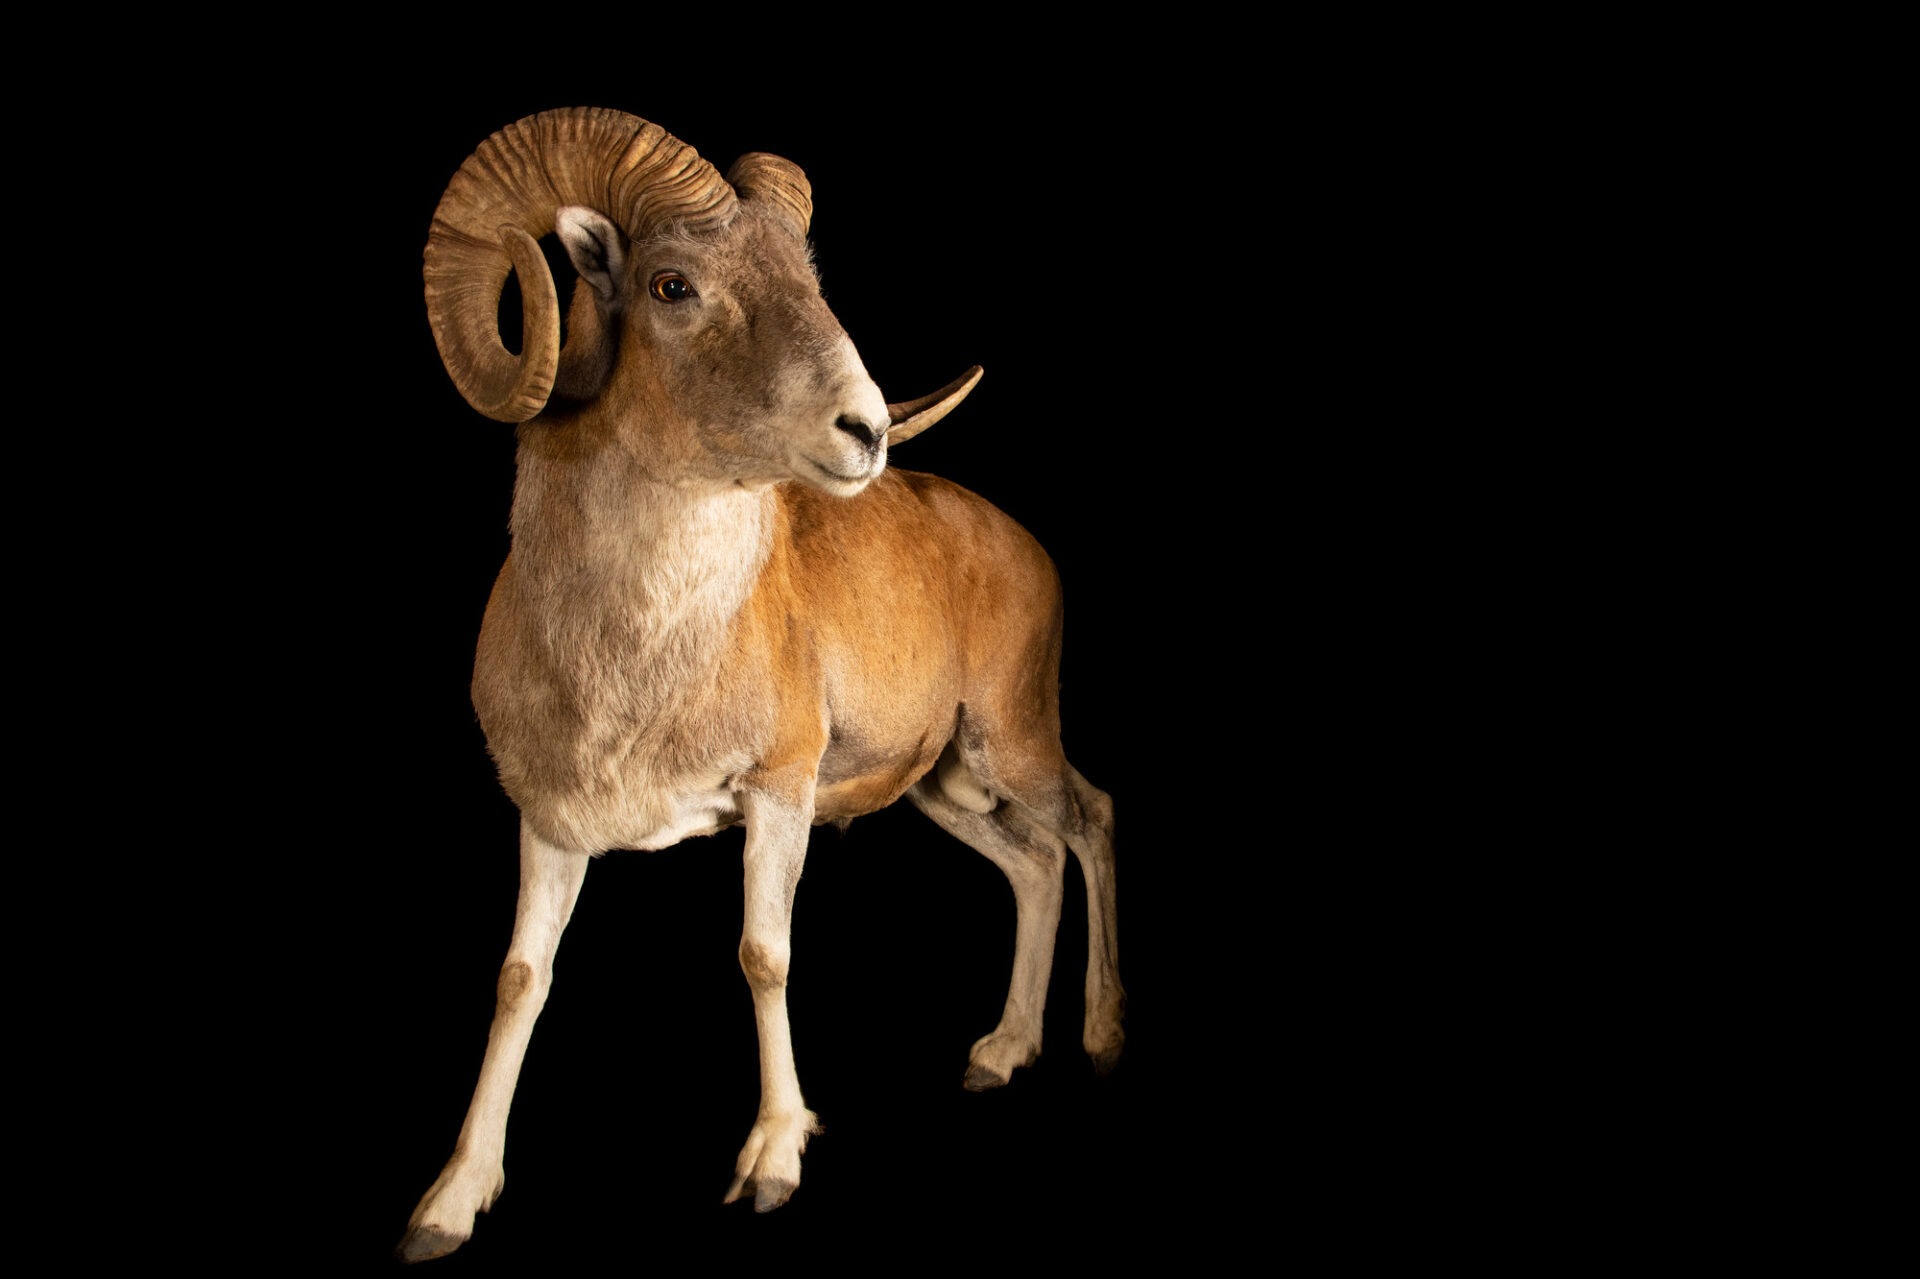 Photo: A male Marco Polo sheep (Ovis ammon polii) at Tierpark Berlin.